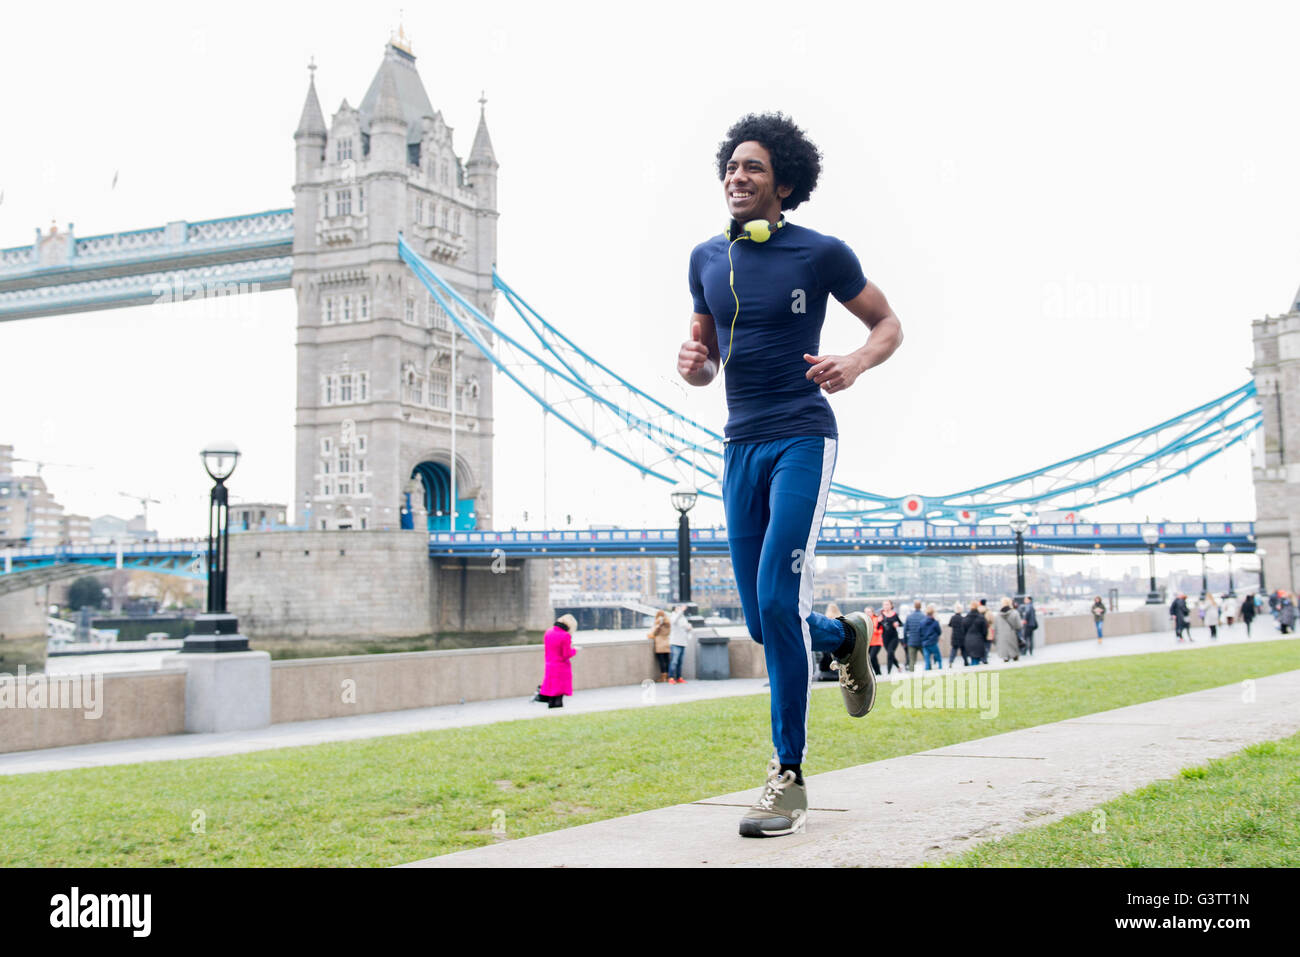 A young man jogging past Tower Bridge in London. - Stock Image